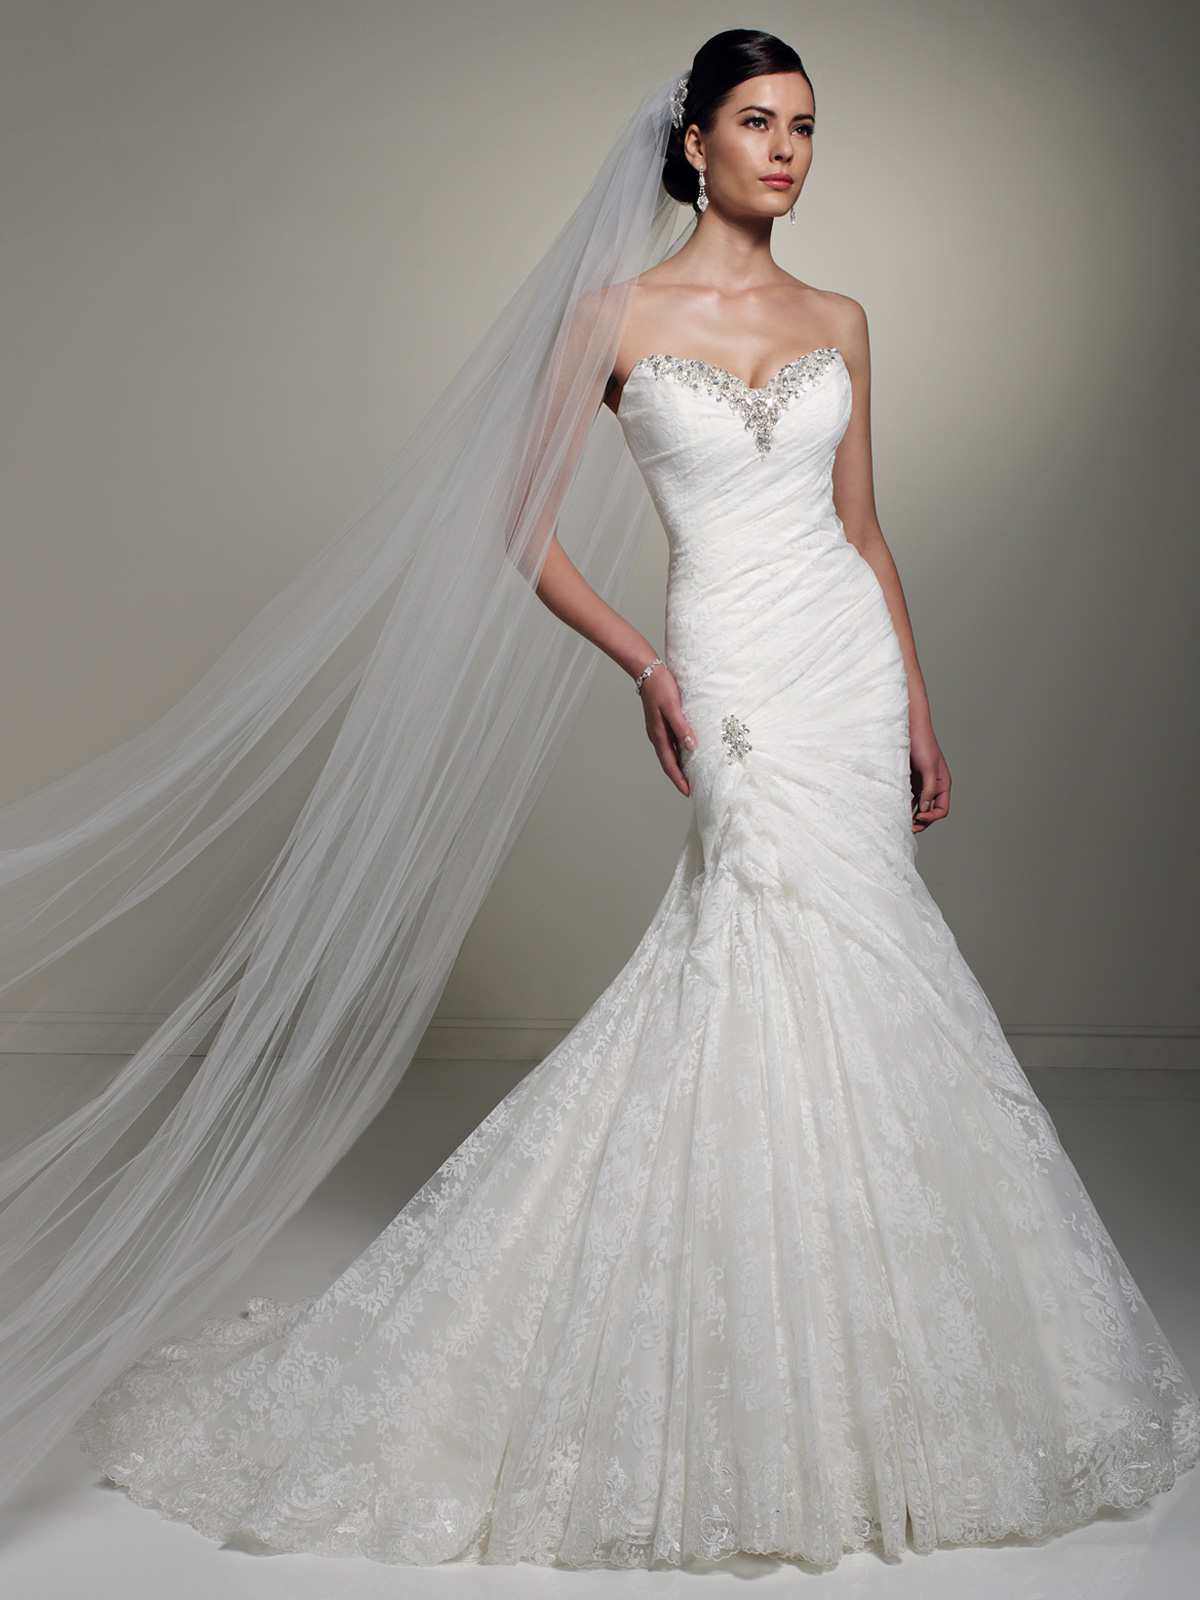 Crystal Sweetheart Neckline Wedding Gown Olga Sophia Tolli By Mon Cheri Y21262